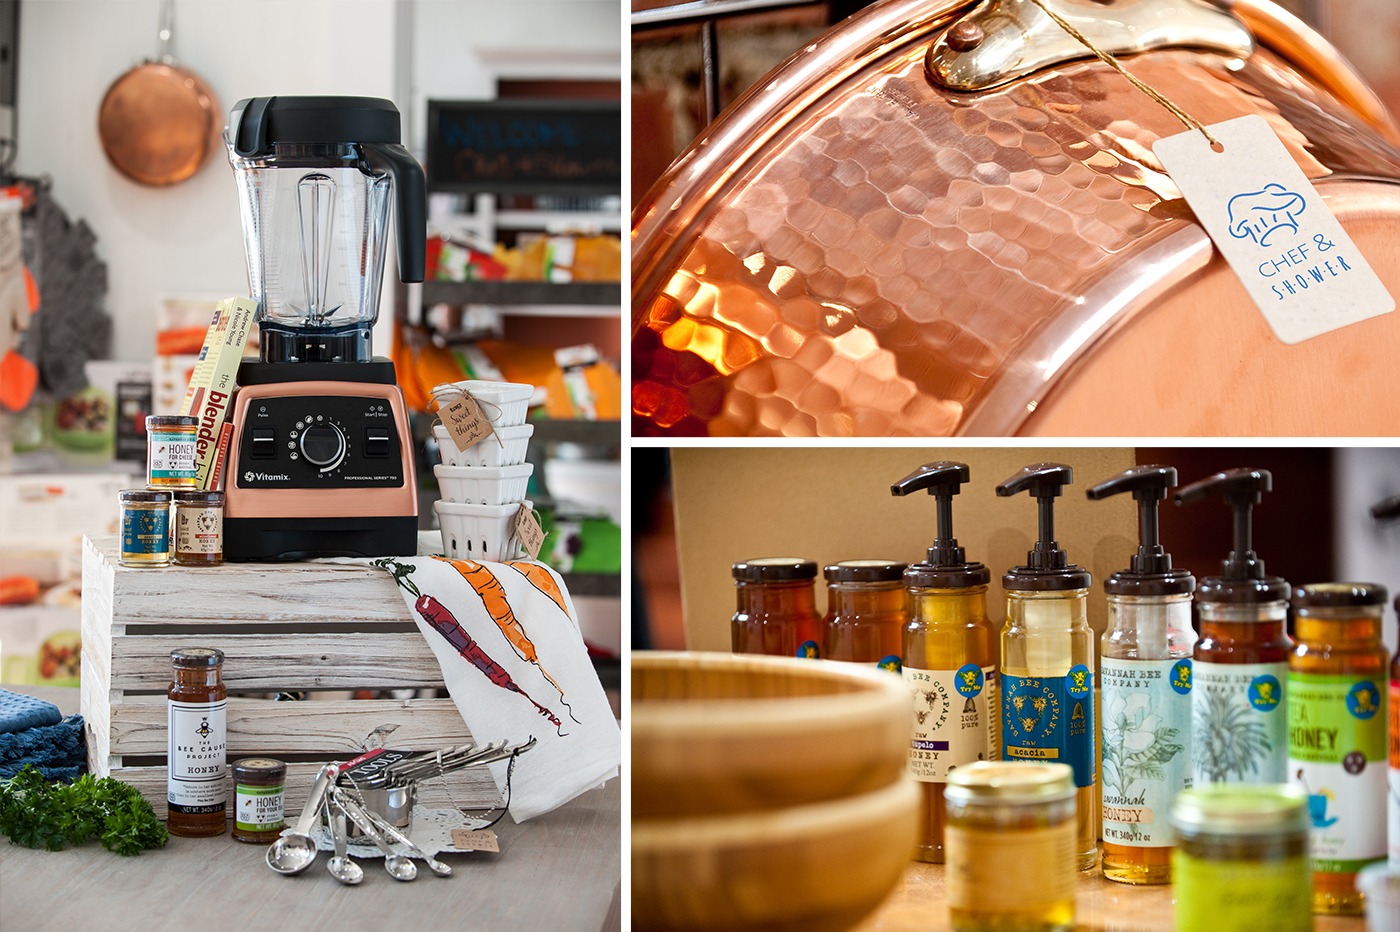 Chef & Shower | Easton Maryland | Kitchen Store | Gourmet | Cutlery | Food Products | Cookbooks | Gifts